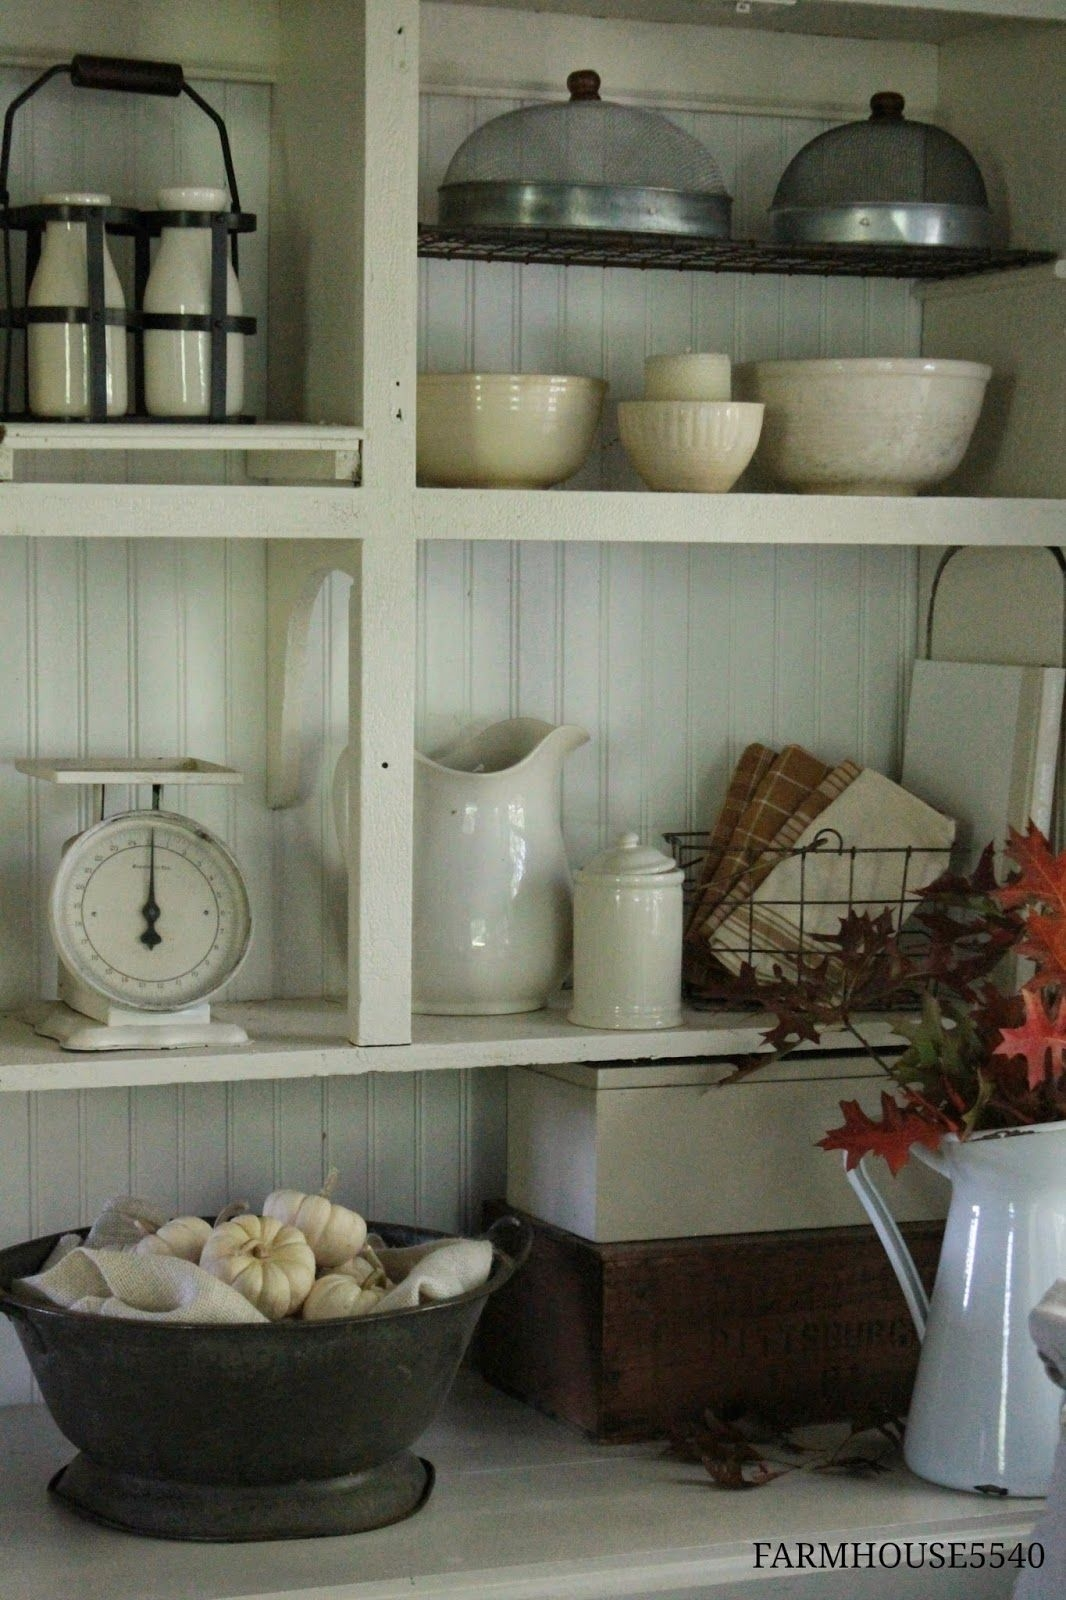 Simple Country Decorating Ideas  FARMHOUSE 5540  Shabby